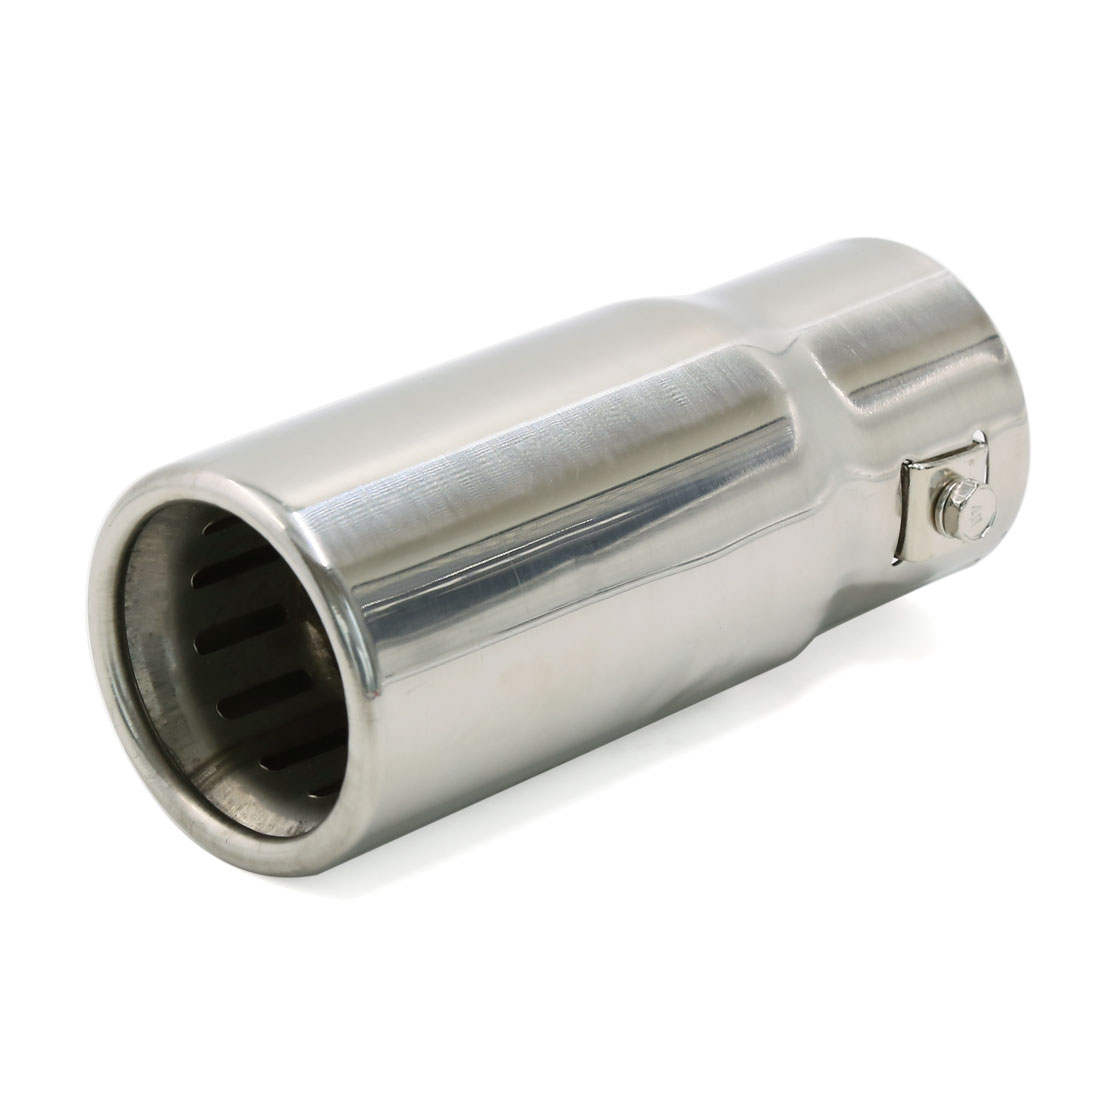 Universal Sliver Tone Straight Round Tip Car Exhaust Muffler Pipe 14.6cm Long